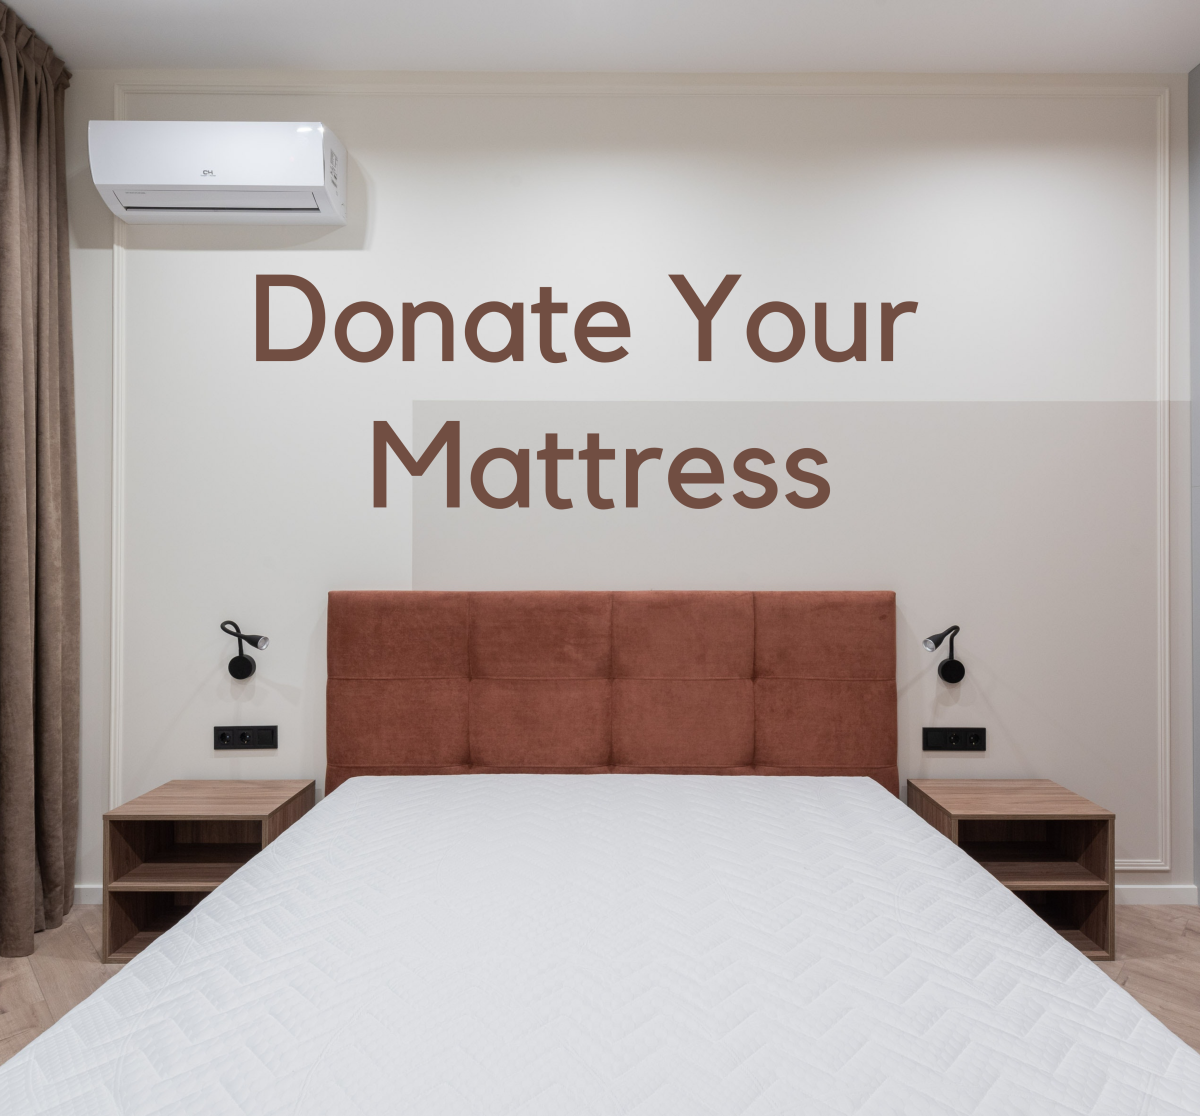 If your mattress is in reasonable condition, you can probably donate it!